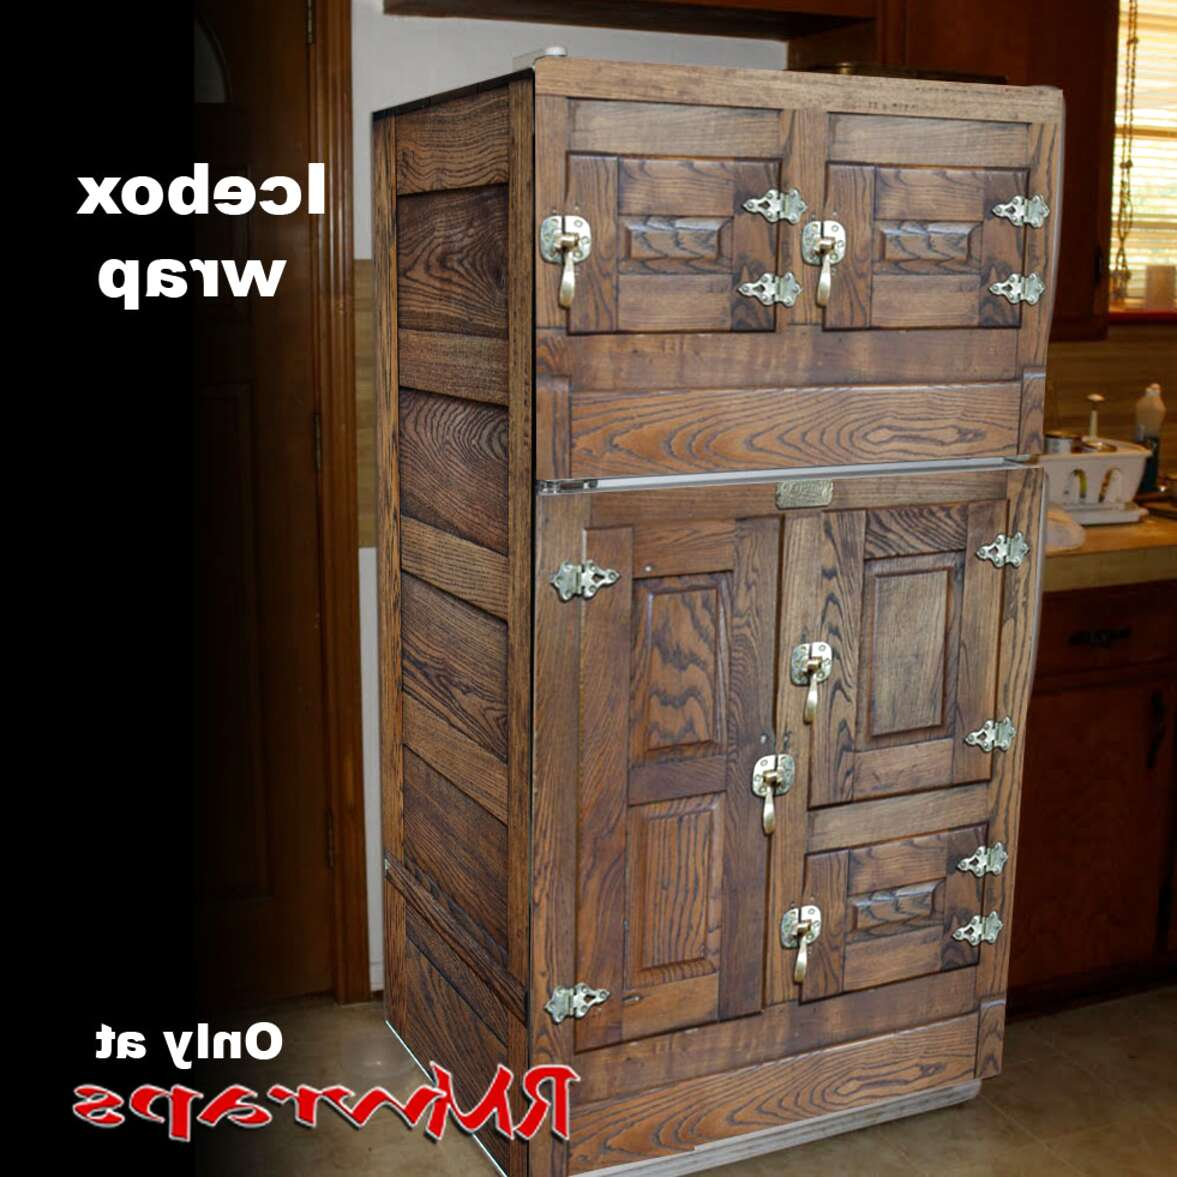 Antique Ice Box Refrigerator for sale | Only 4 left at -70%